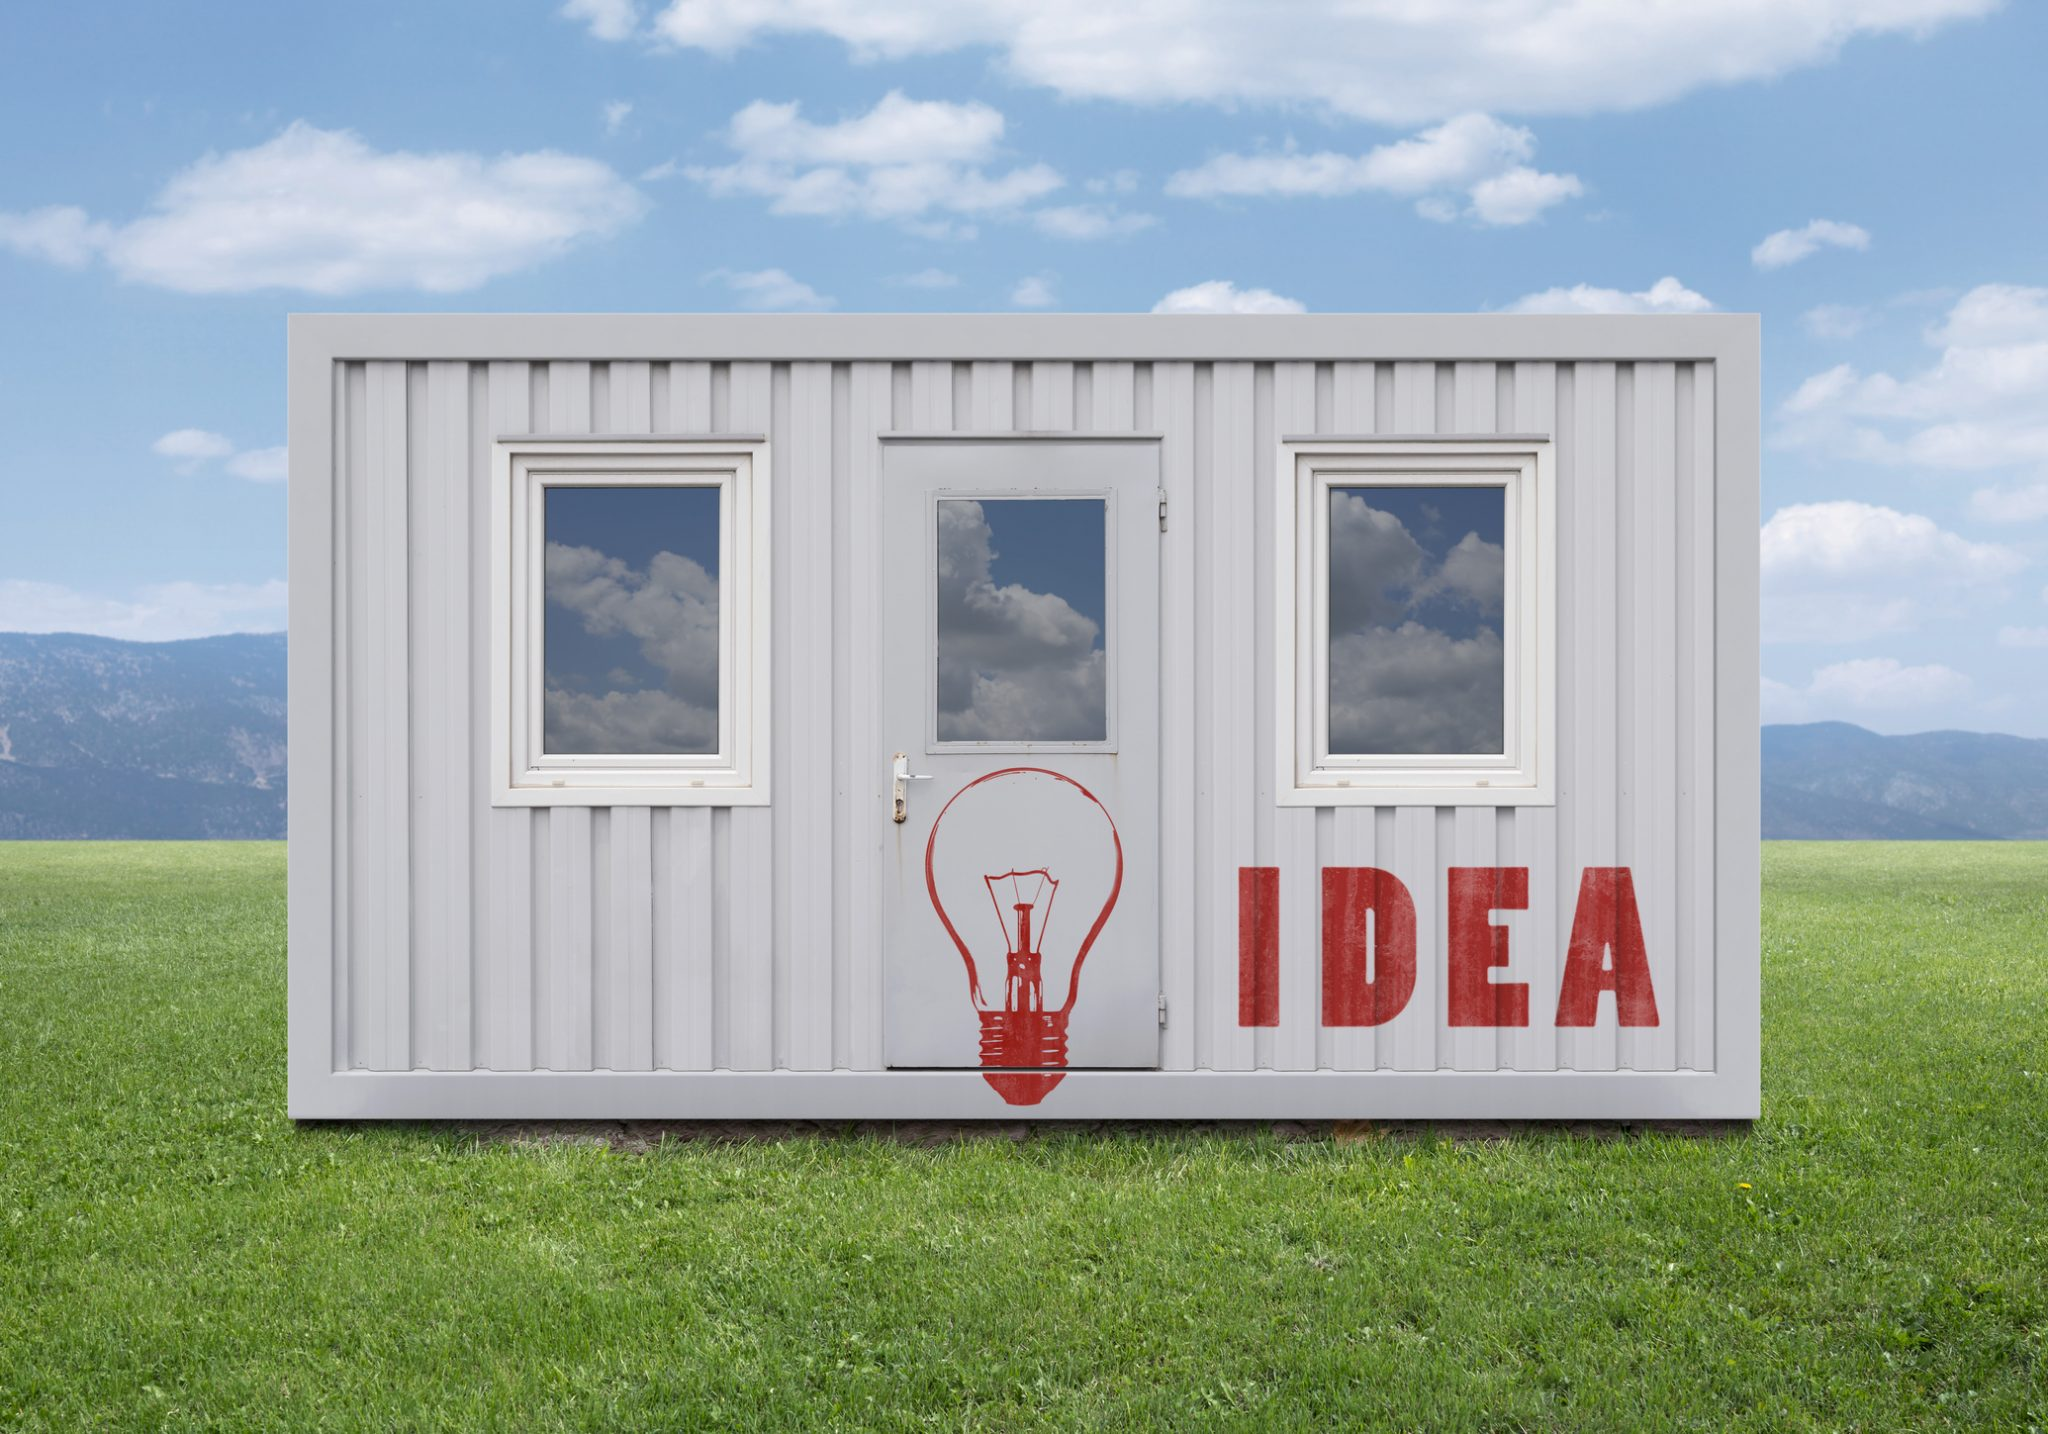 "Stencil Graffiti On A Shipping Container Structure On Field With A Cloudy Sky Background View: Red Colored Light Bulb And ""IDEA"" Text."